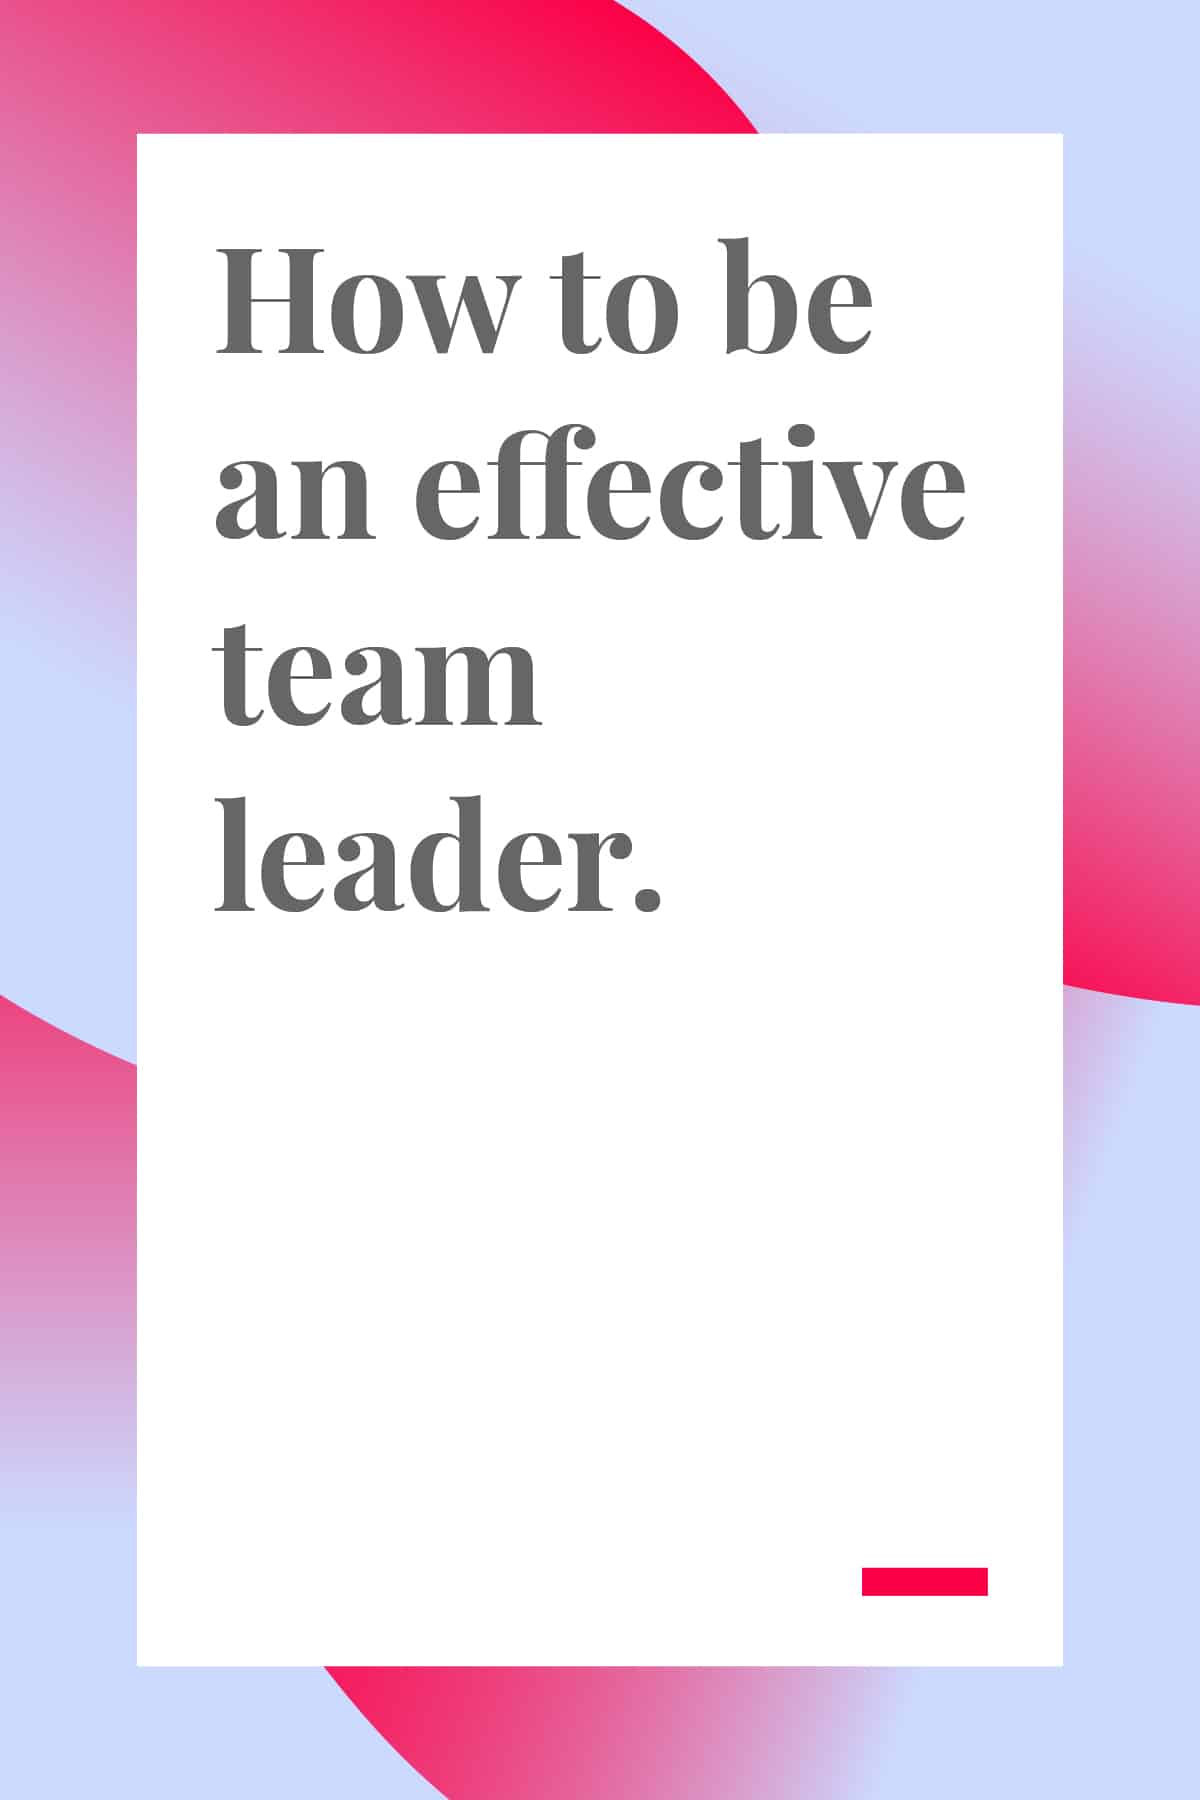 Wondering how to be a more effective team leader? Check out these tips and improve your leadership and your team's performance. #leadership #leadershiptips